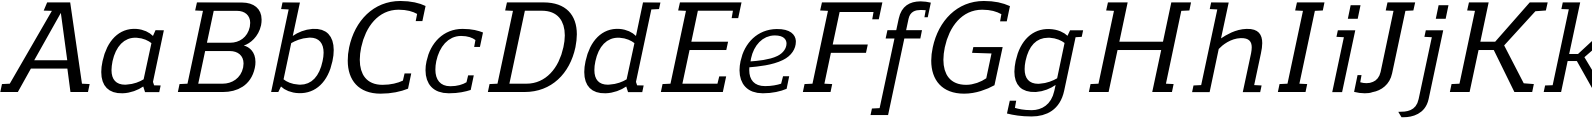 Regan Slab Medium Italic